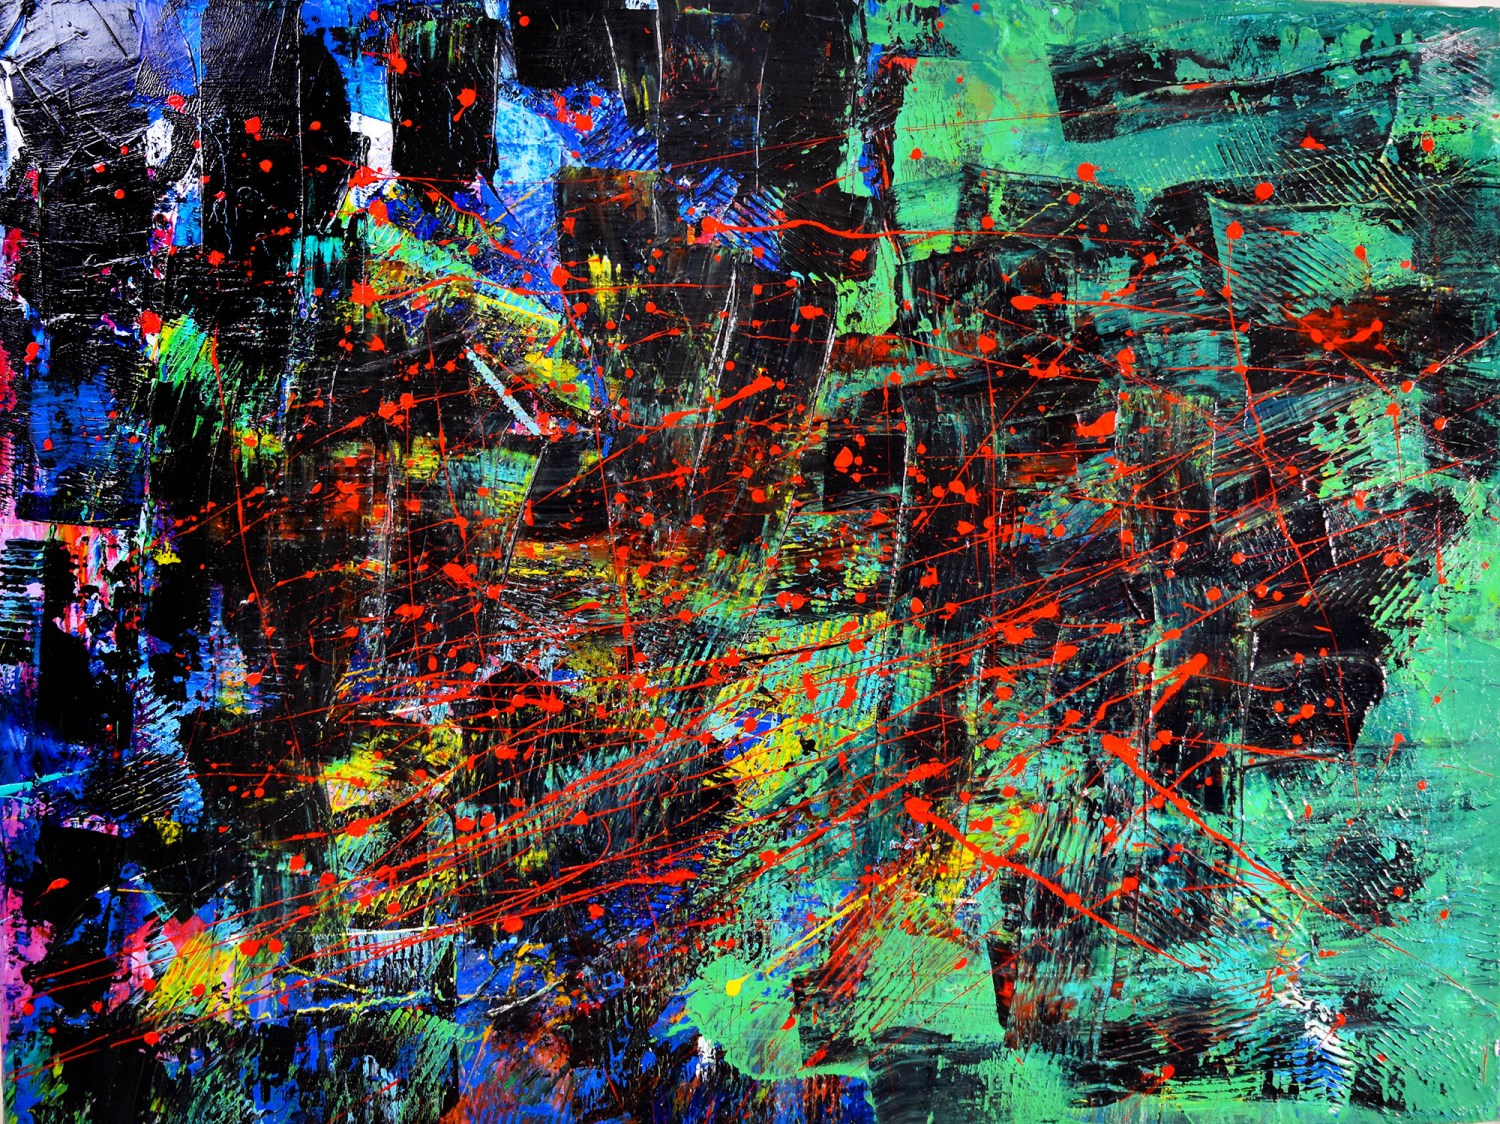 """""""IRON RUST PARTICLES"""" SOLD Artwork by Los Angeles abstract painter Artist - Nestor Toro created in 2015 and sold in 2016 to private collector"""